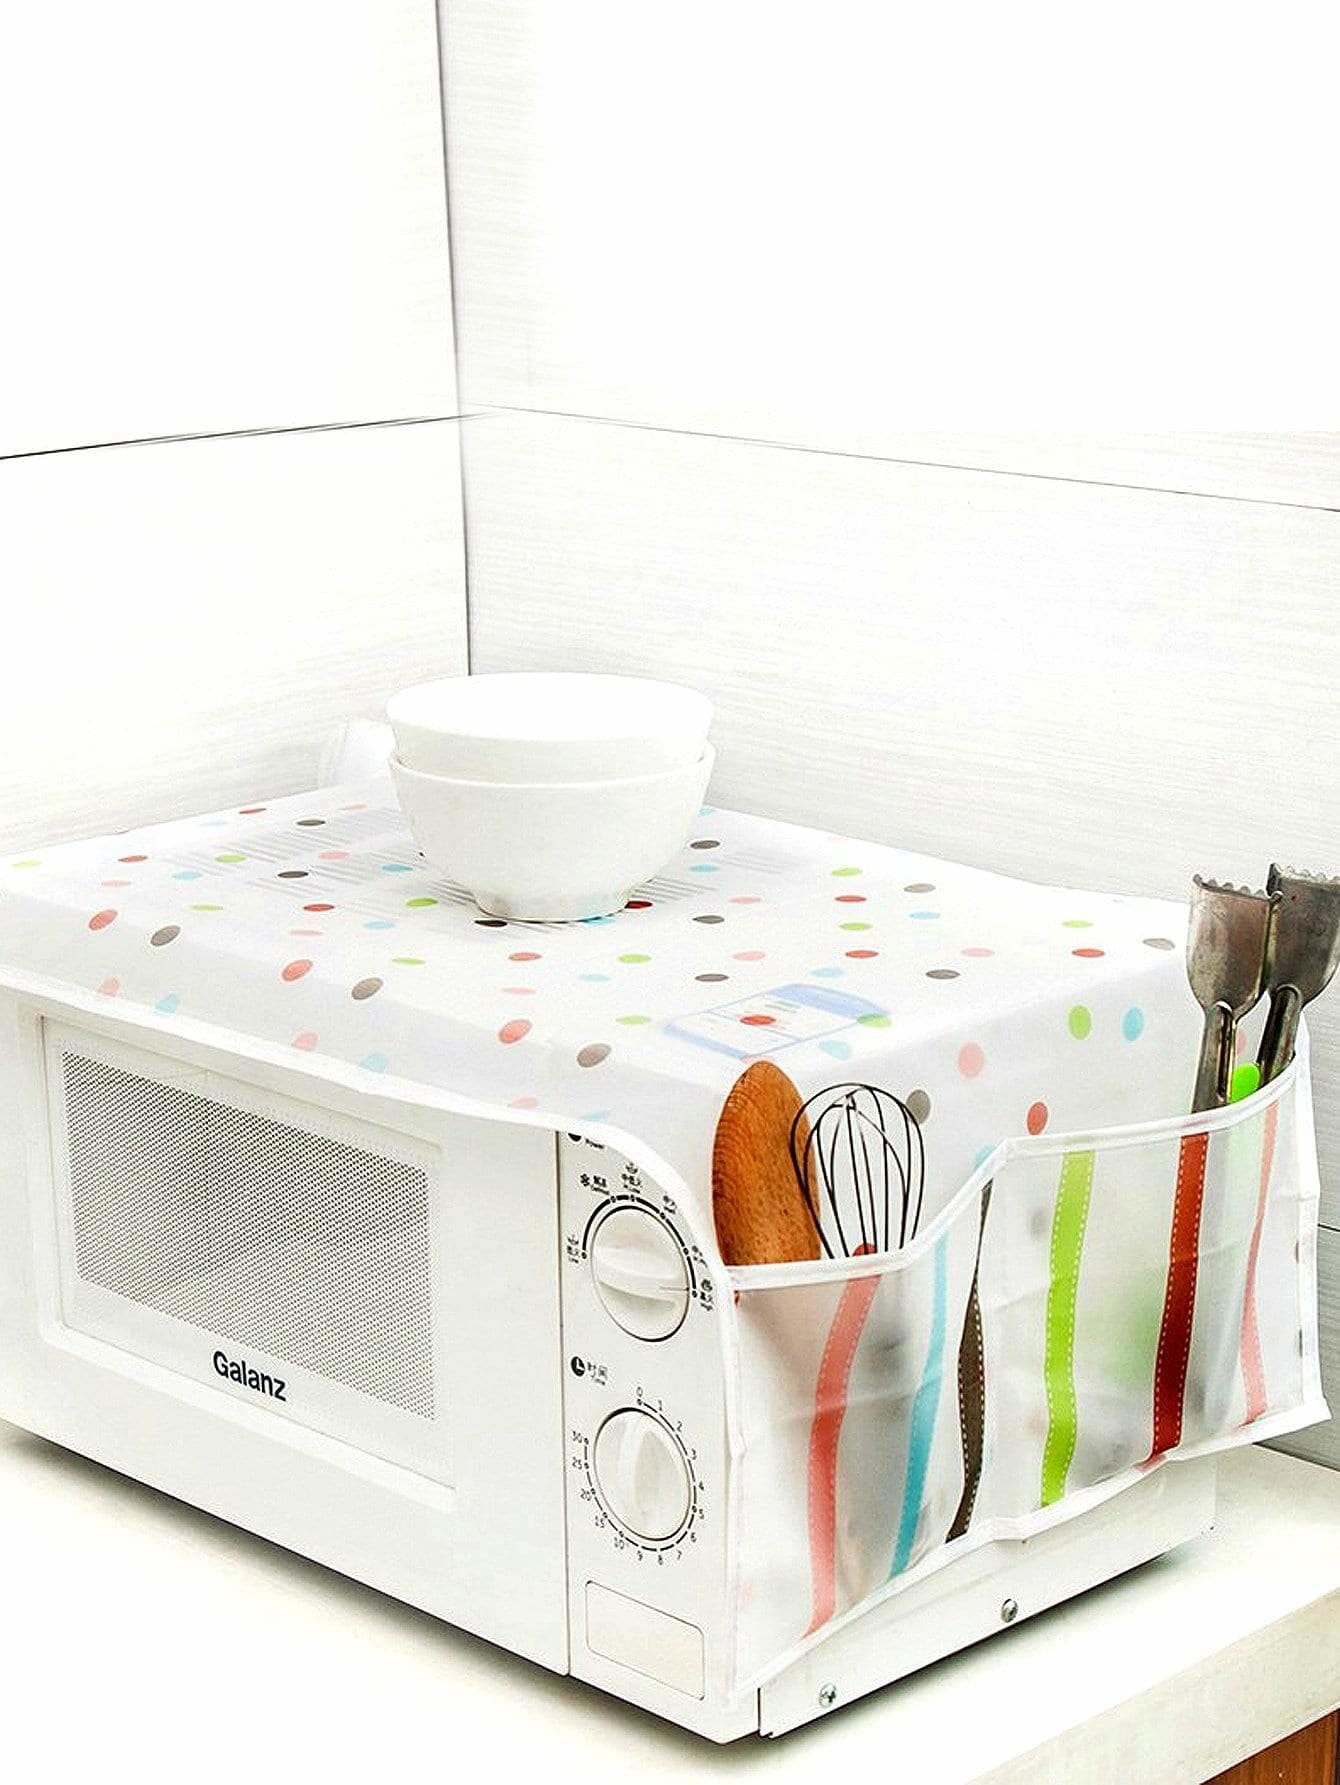 Pocket Side Microwave Oven Dust Cover